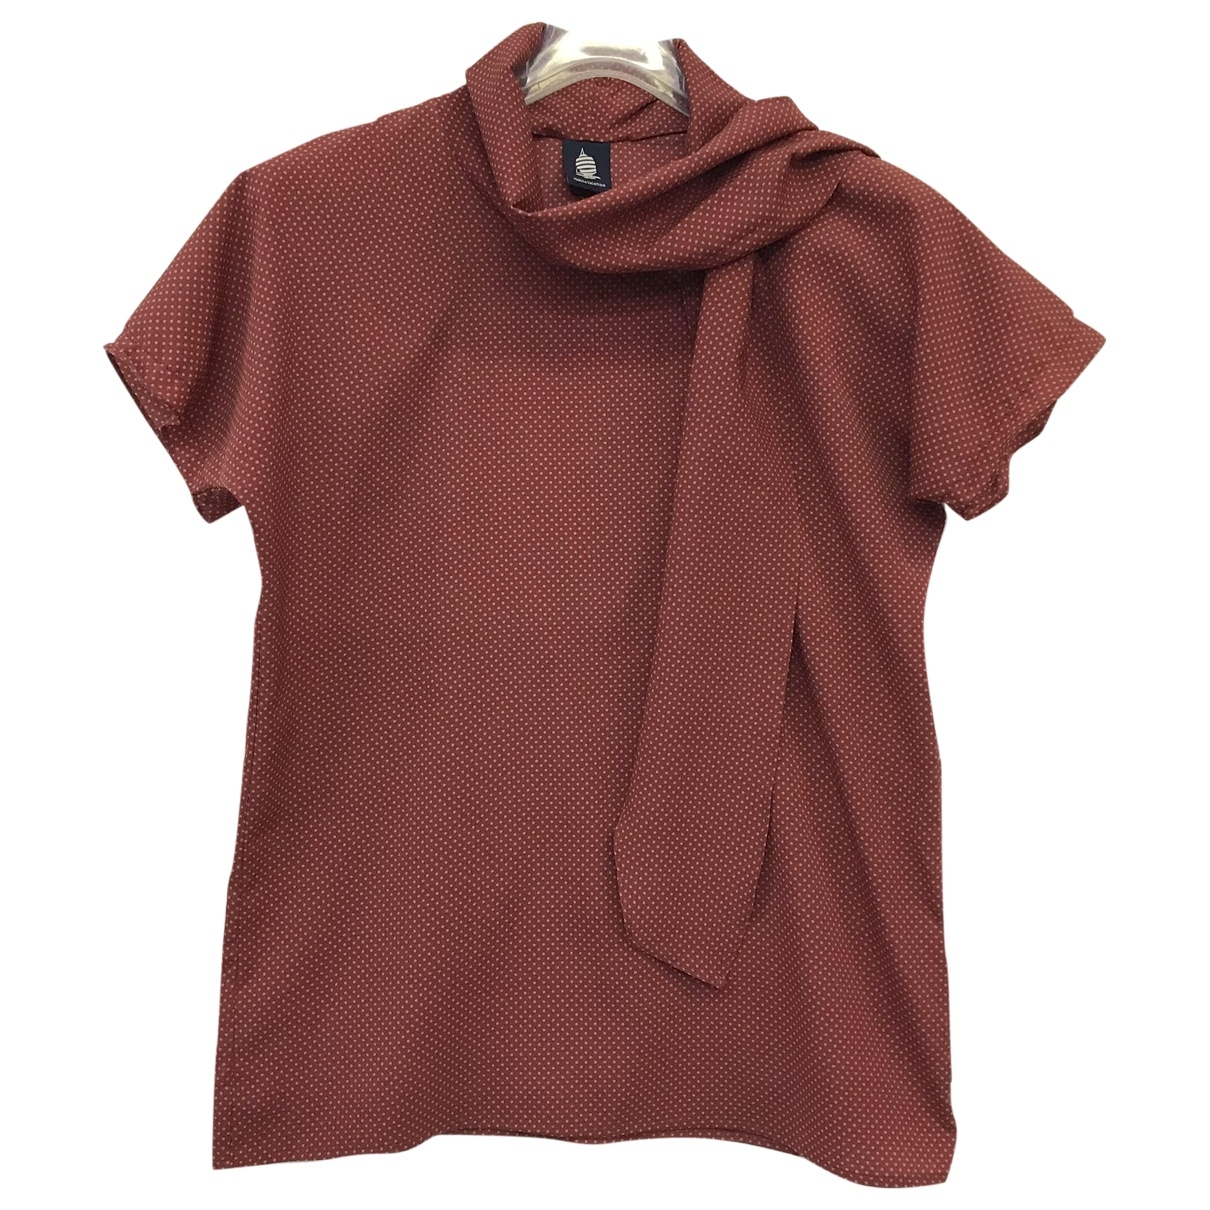 Marina Yachting - Top   pour femme